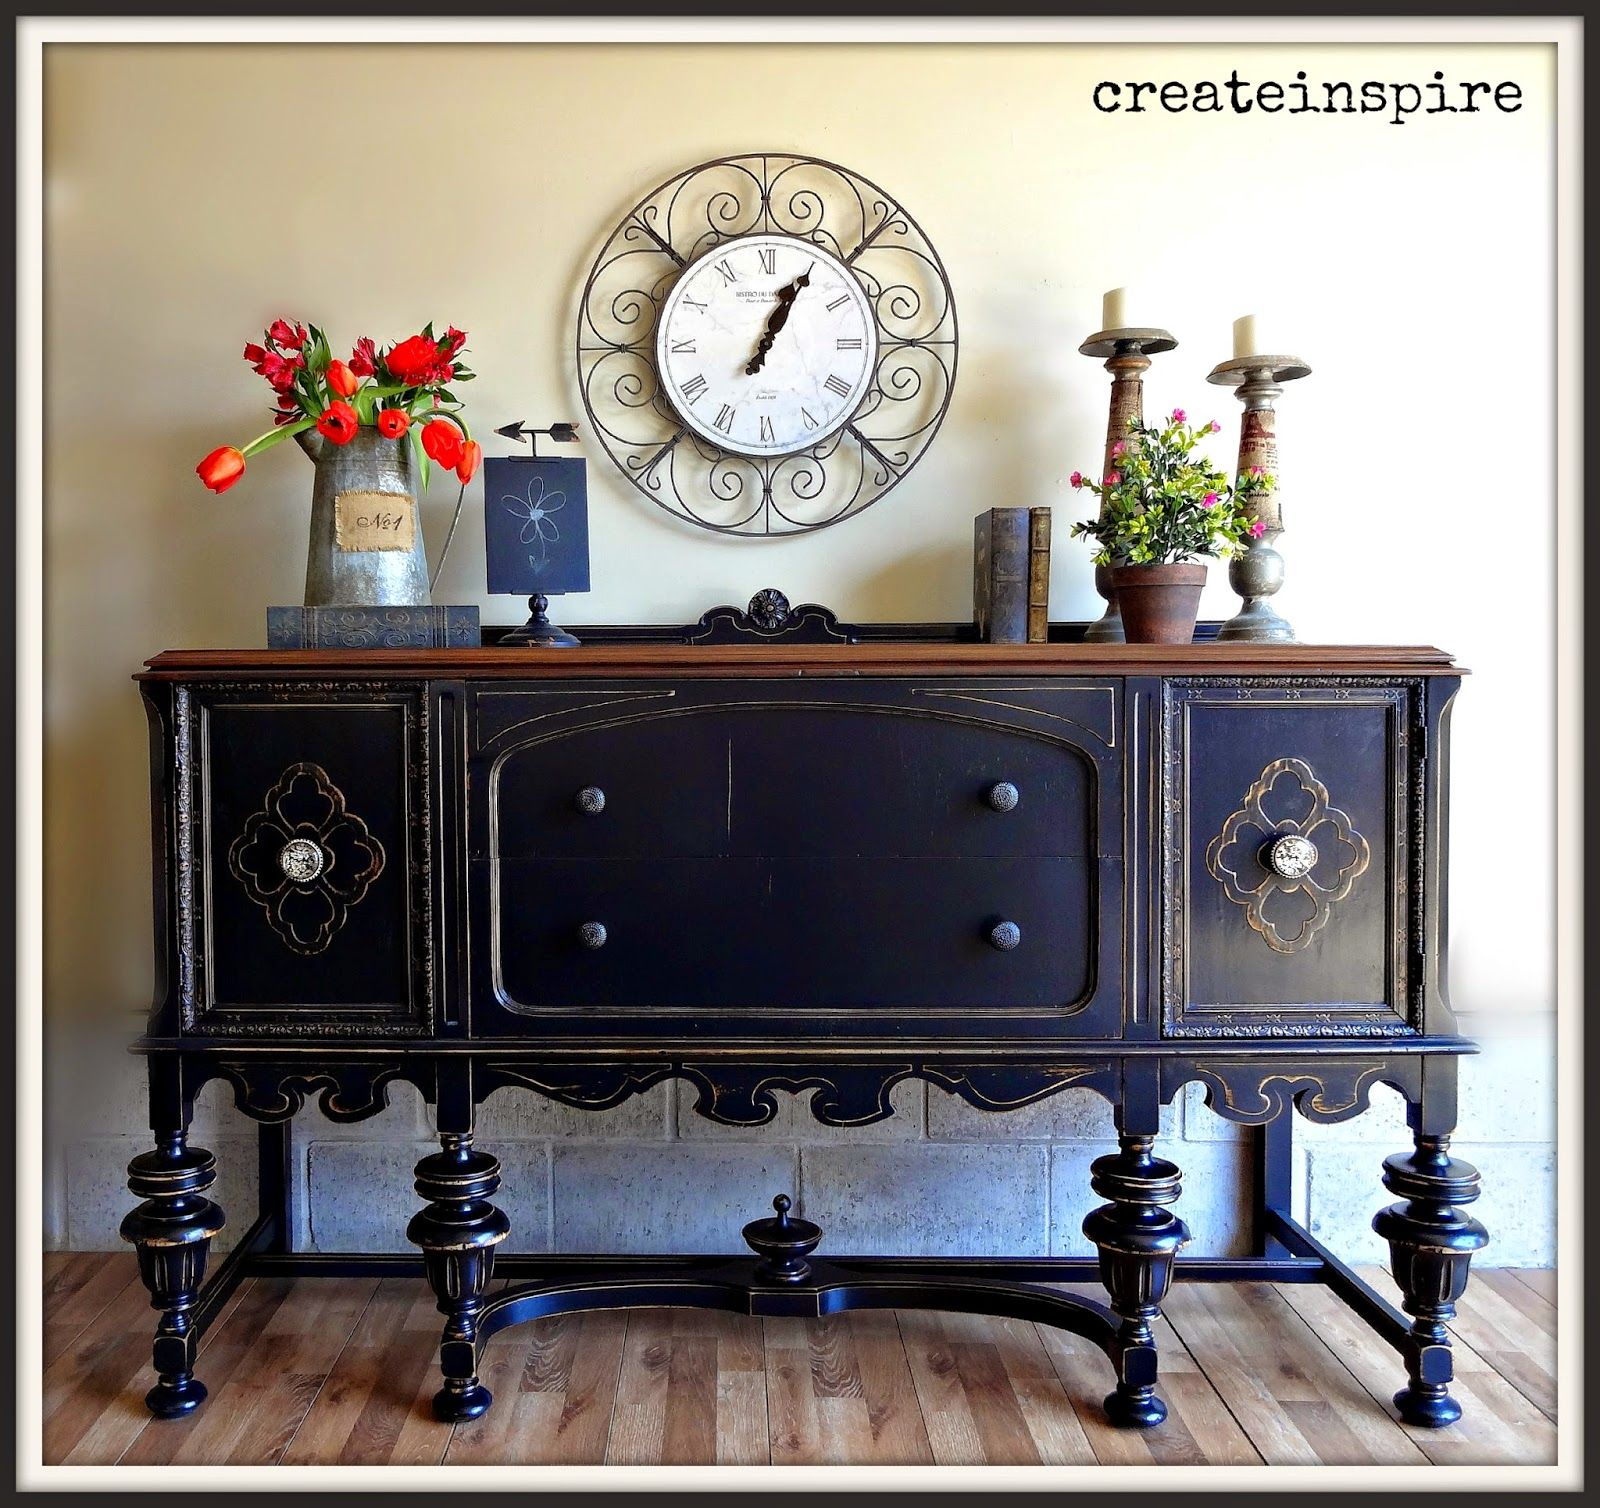 Admirable Createinspire Antique Buffet In Black Painting Furniture Interior Design Ideas Helimdqseriescom